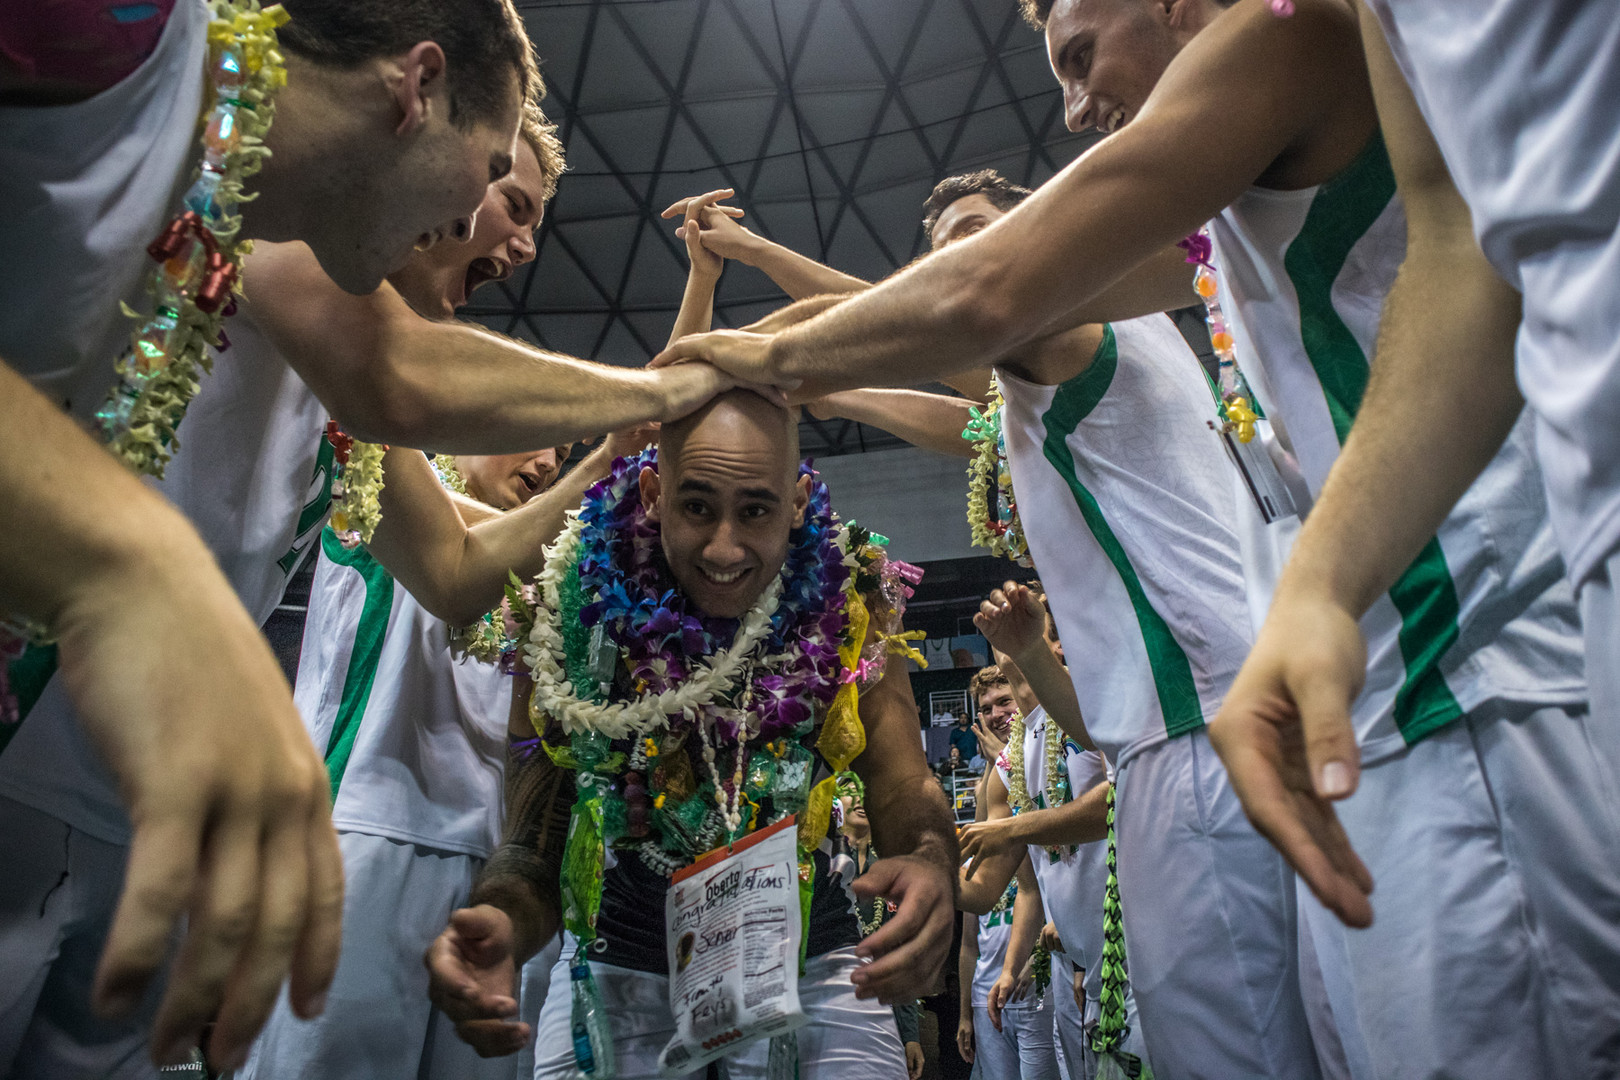 Hawaii's Larry Tuileta makes his appearence through the guard of honor tunnel during men's volleyball senior night on April 15, 2018.